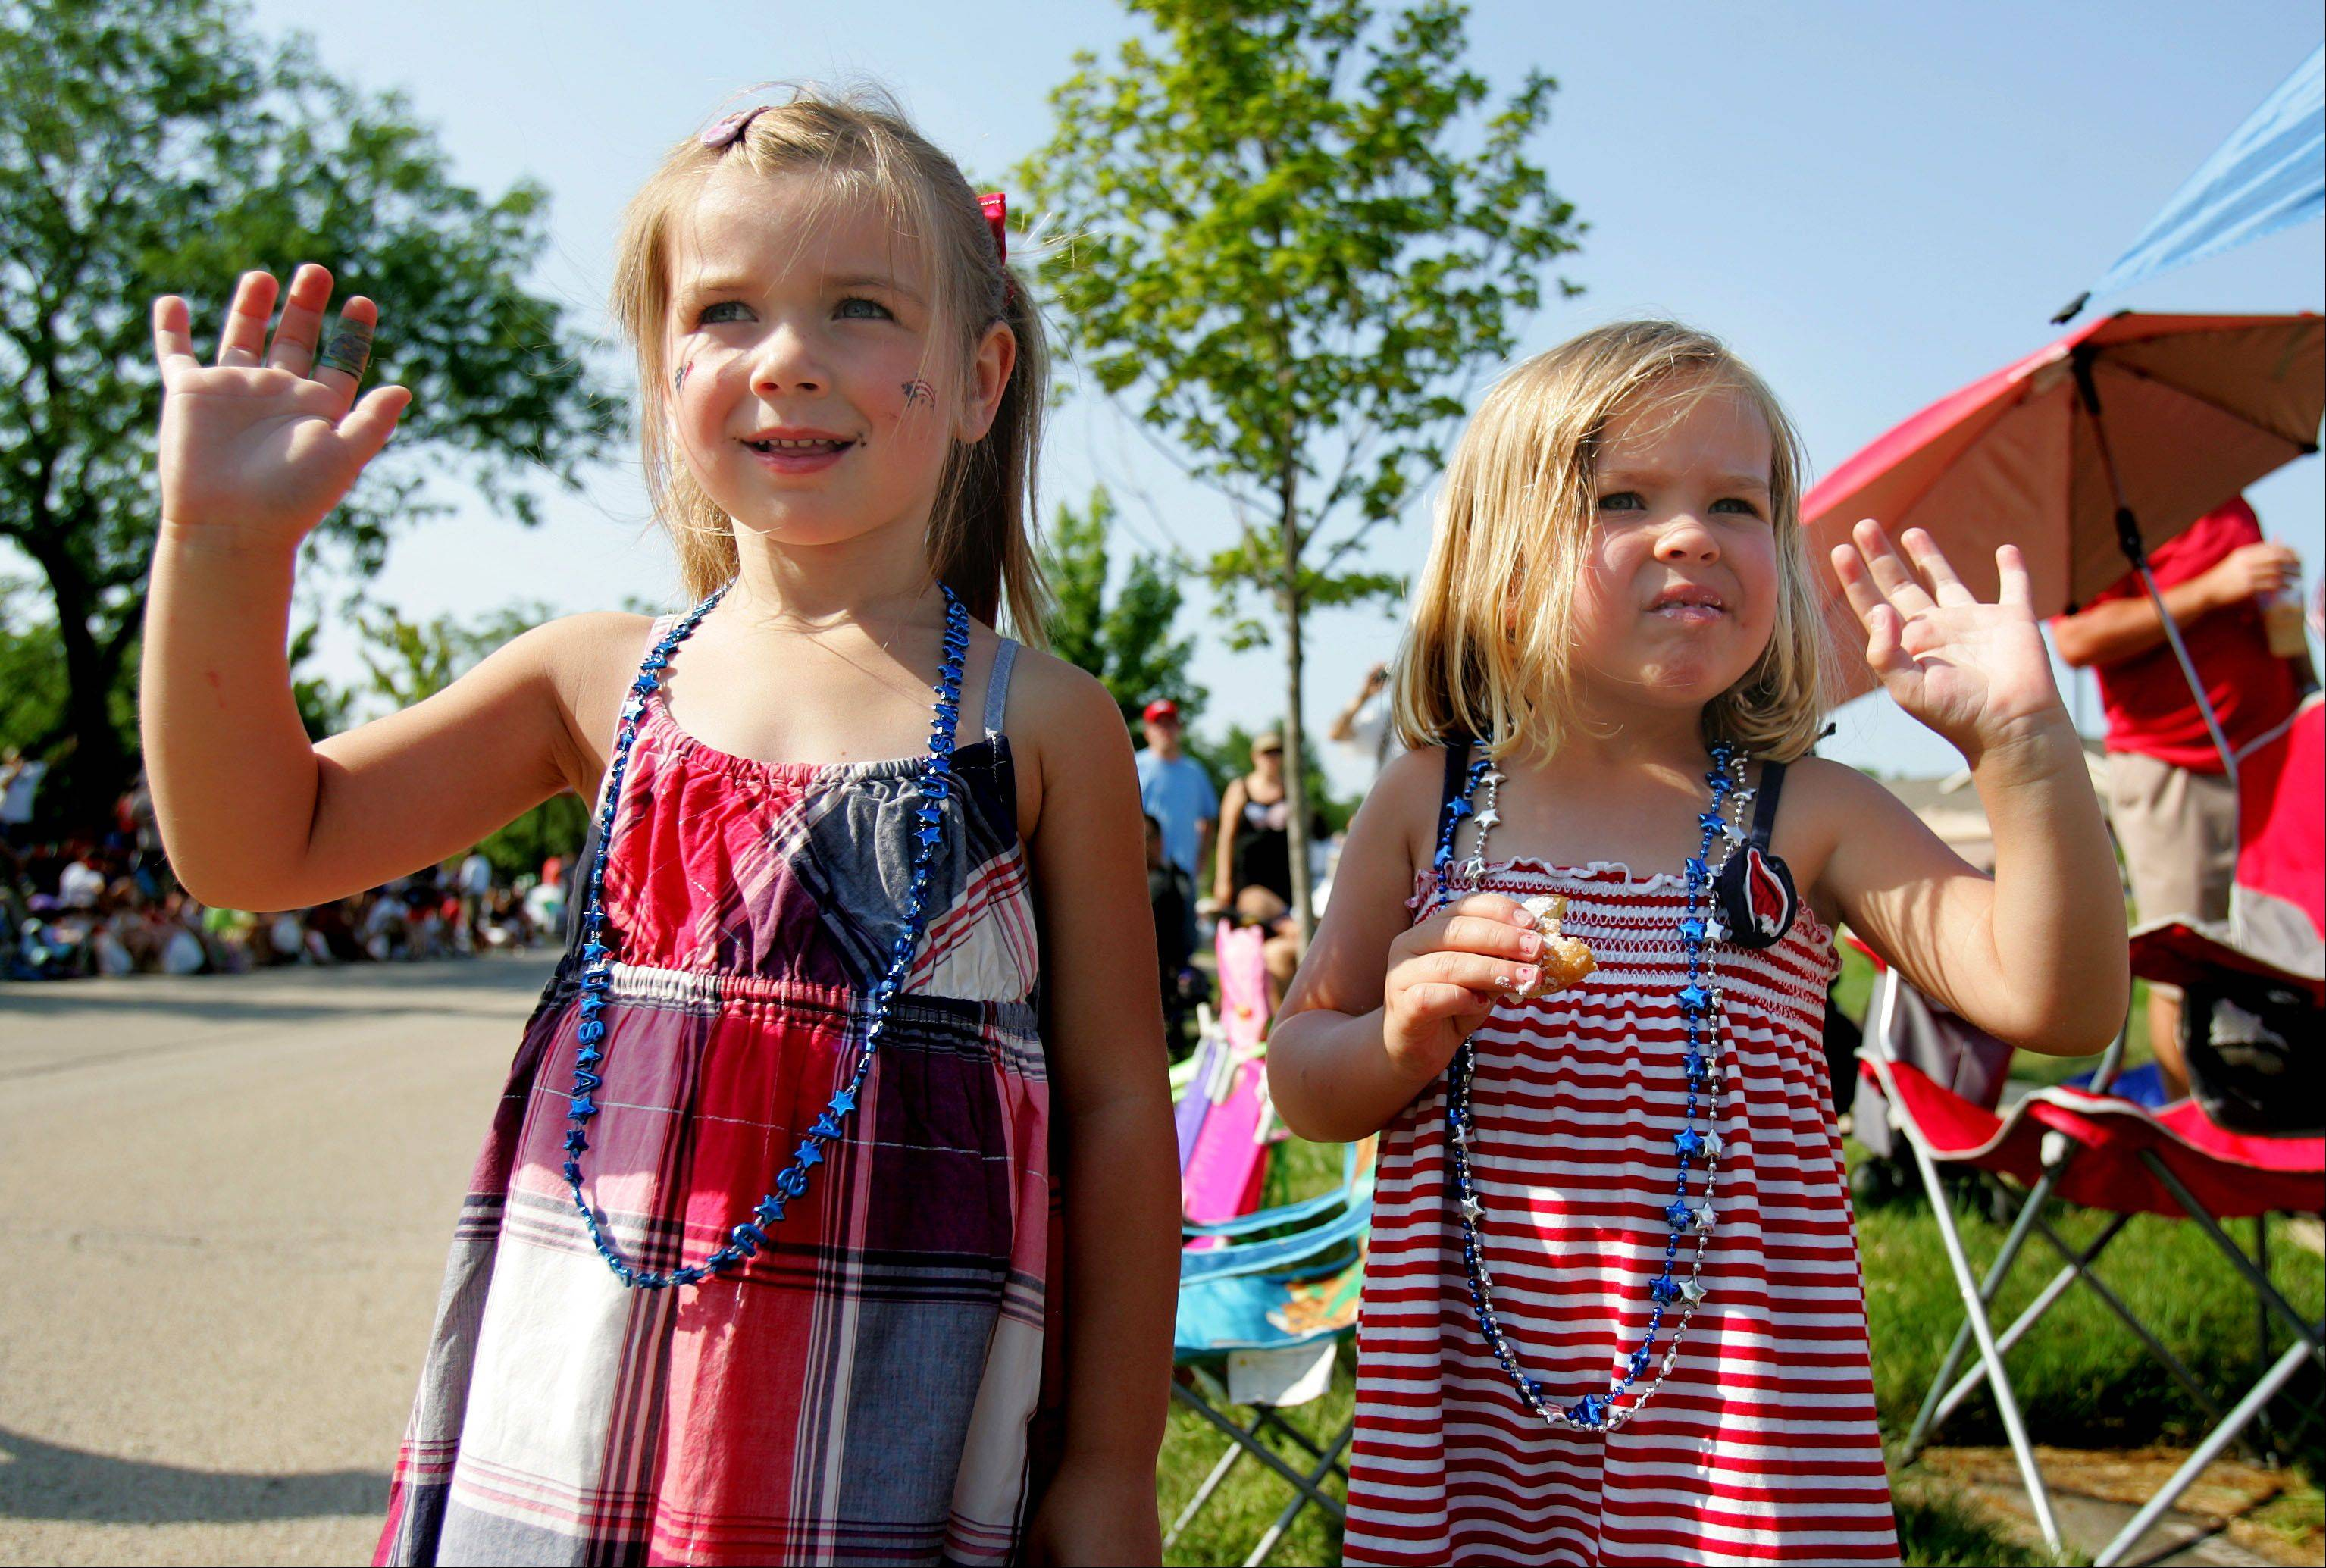 Four-year-old Maddy Gardner, left, and 3-year-old Olivia Altergott, both of Wauconda wave as the Vernon Hills Fourth of July Parade kicked off Wednesday morning winding down Deerpath and Atrium Drives.